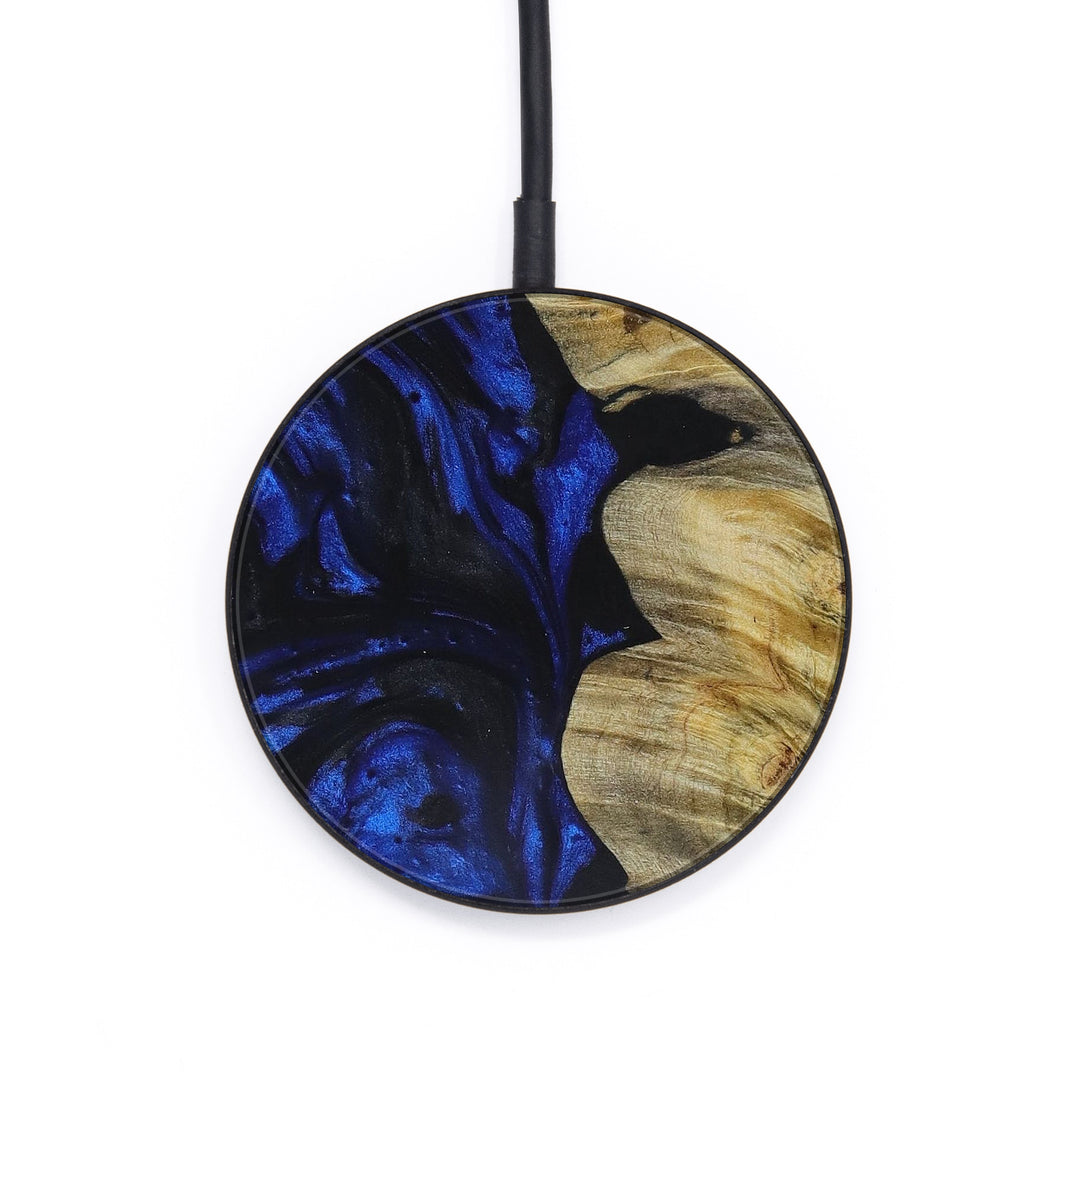 Circle Wood+Resin Wireless Charger - Shou (Dark Blue, 392932)